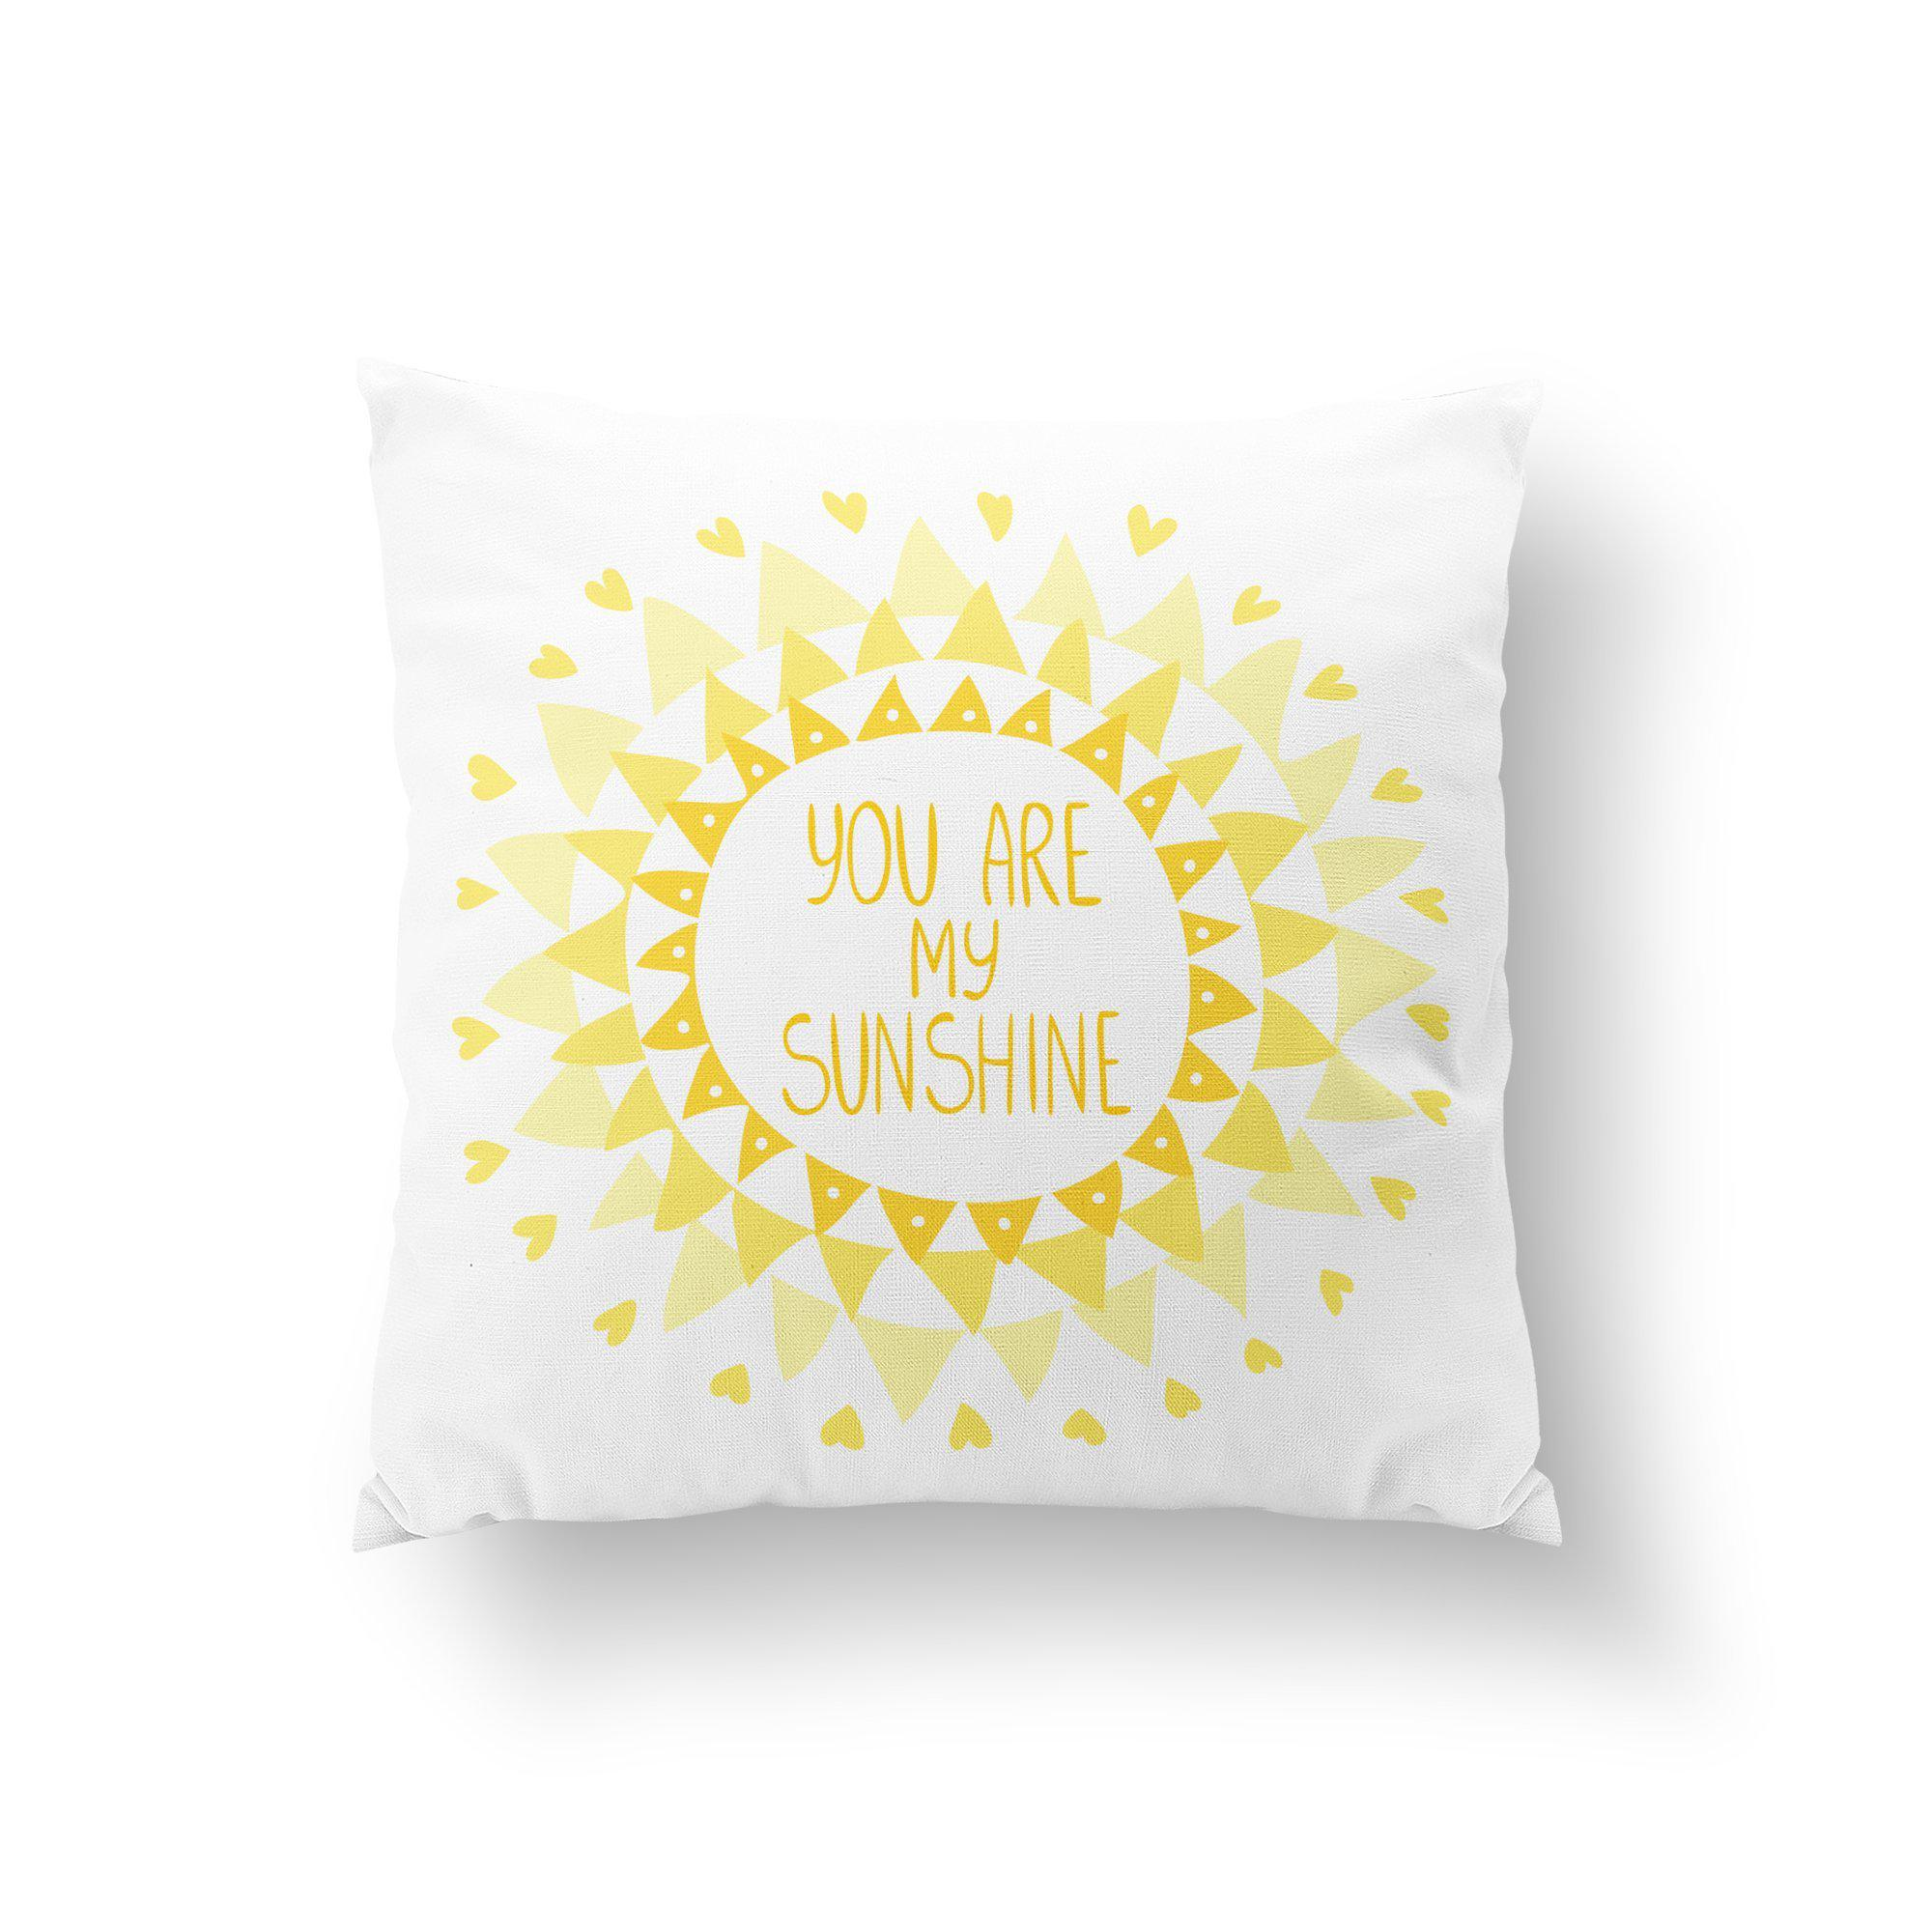 Your Are My Sunshine Throw Pillow-W.FRANCIS